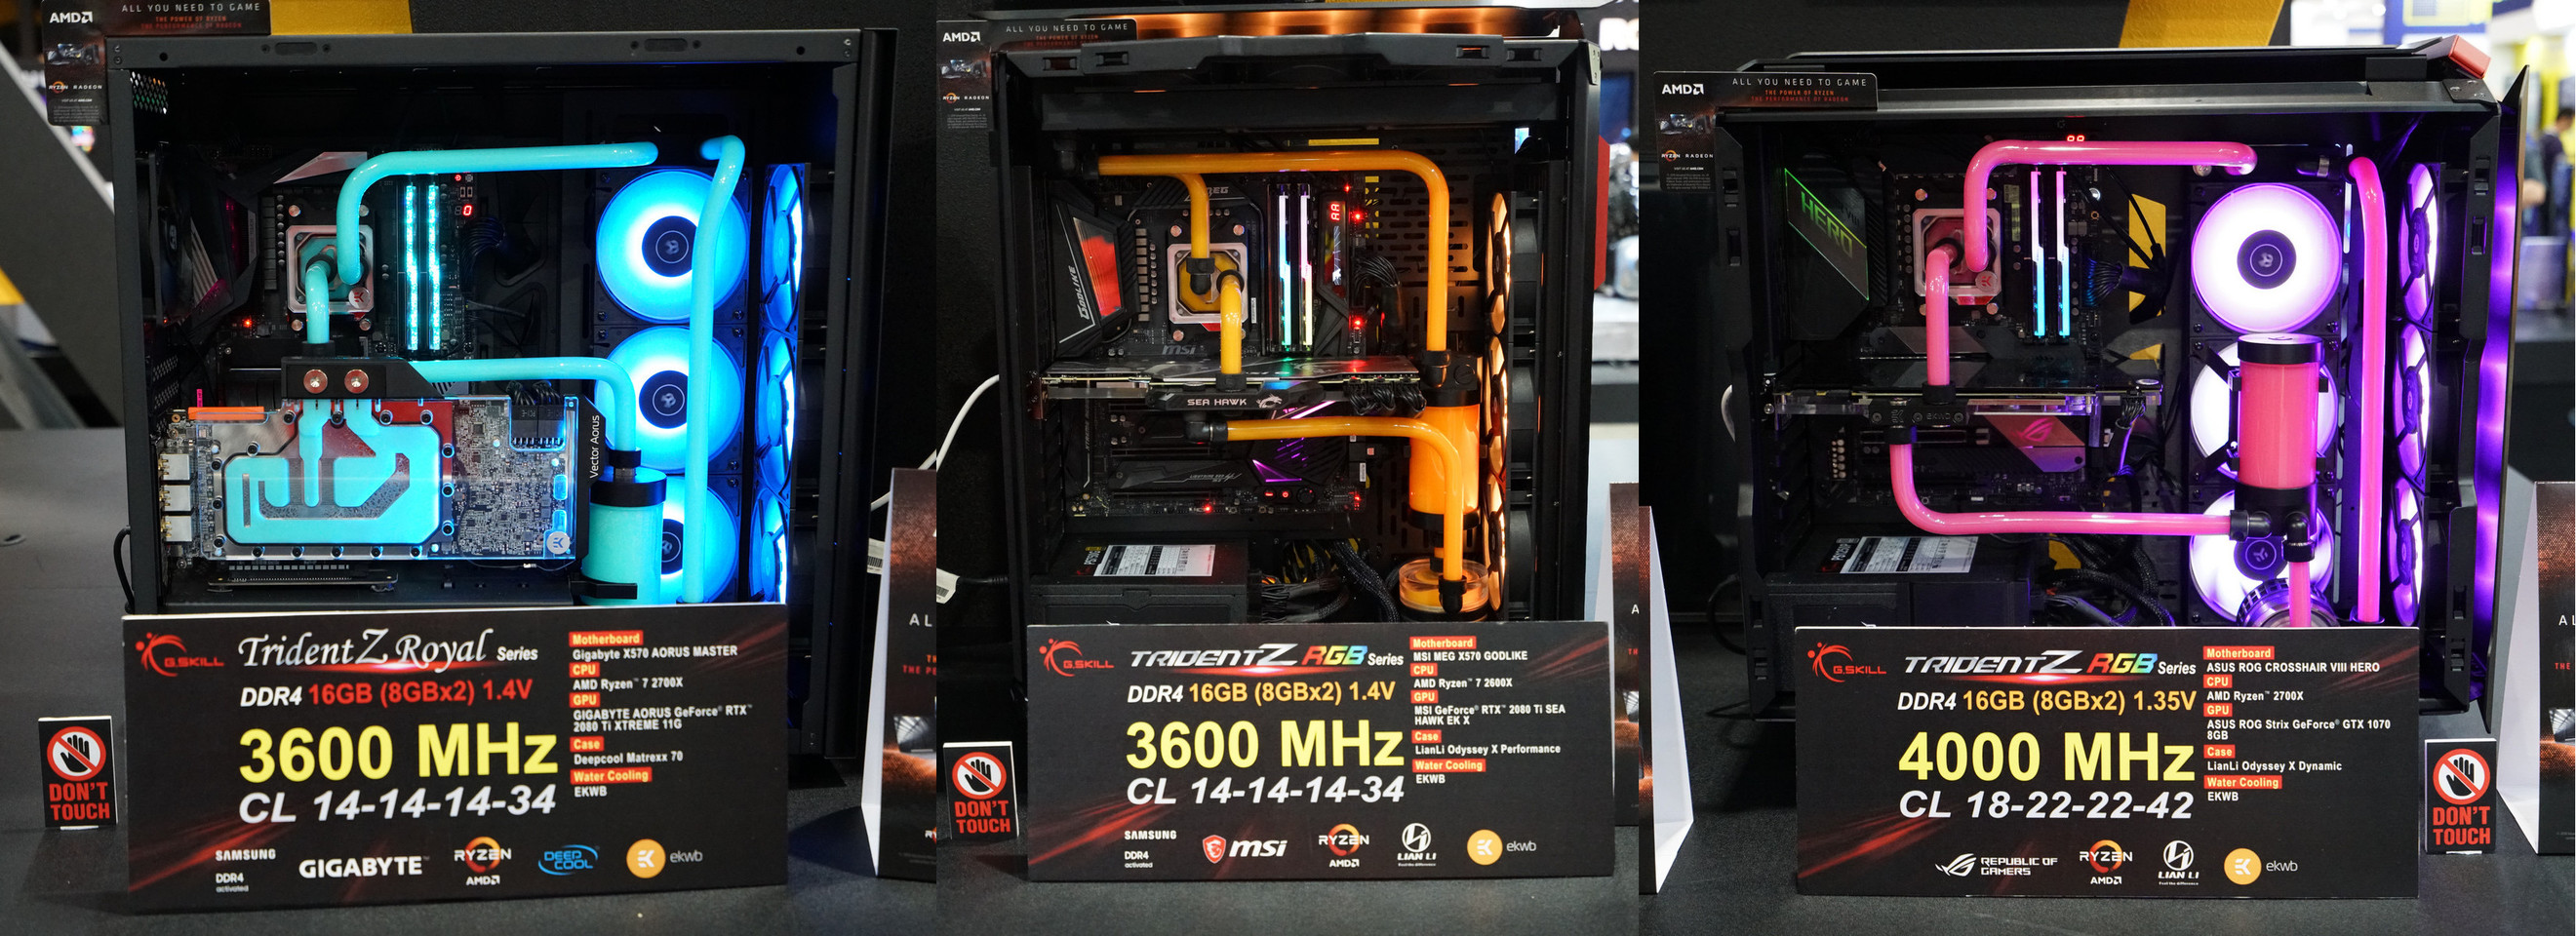 G SKILL Showcases Extreme DDR4 at Computex 2019, Up to DDR4